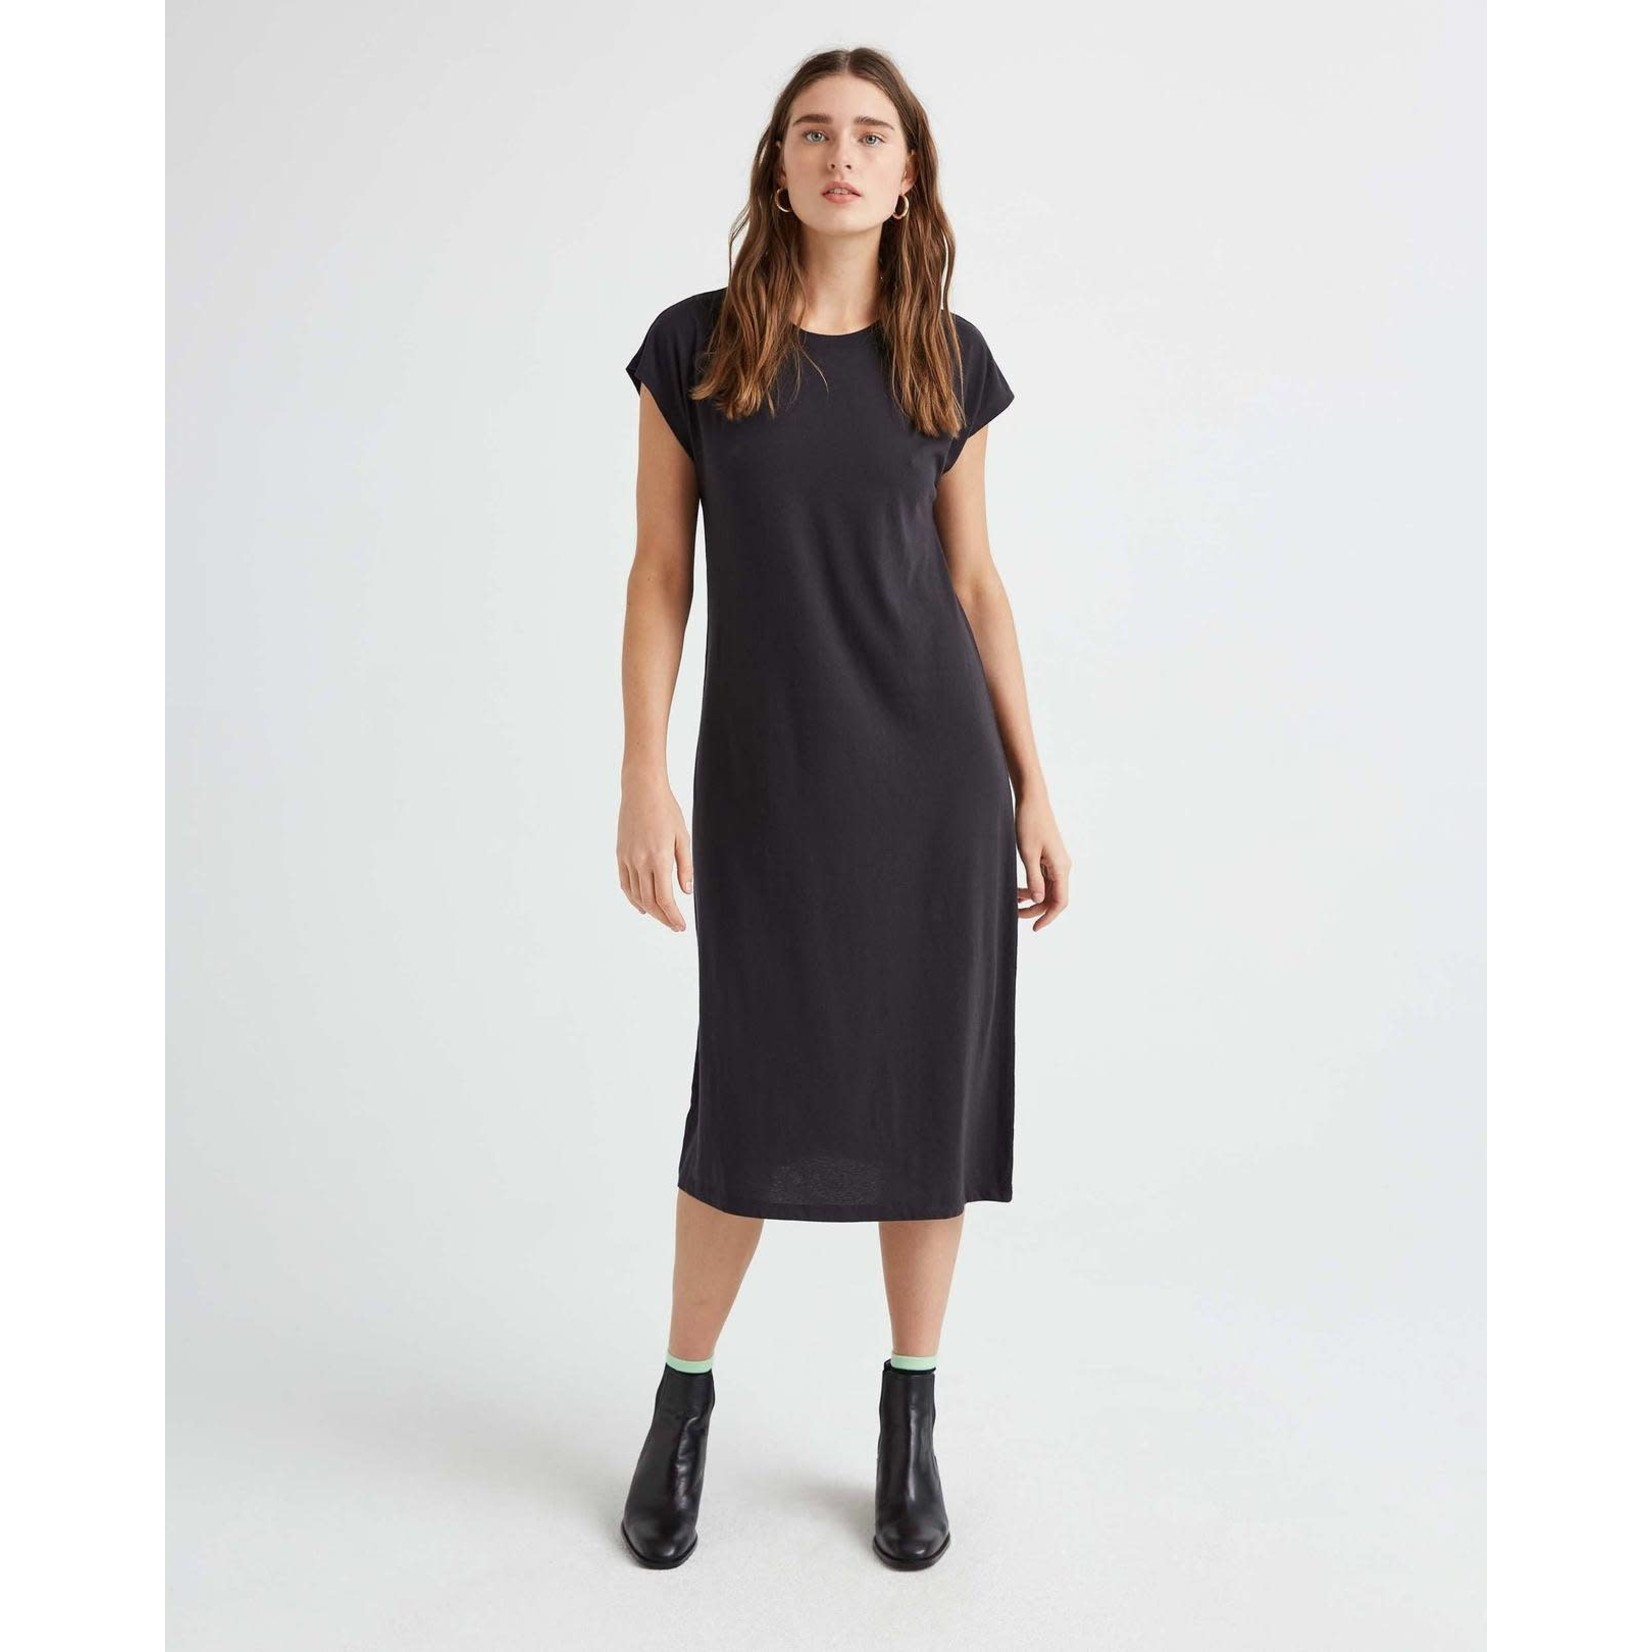 Richer Poorer Robe EASY DRESS - noir / small